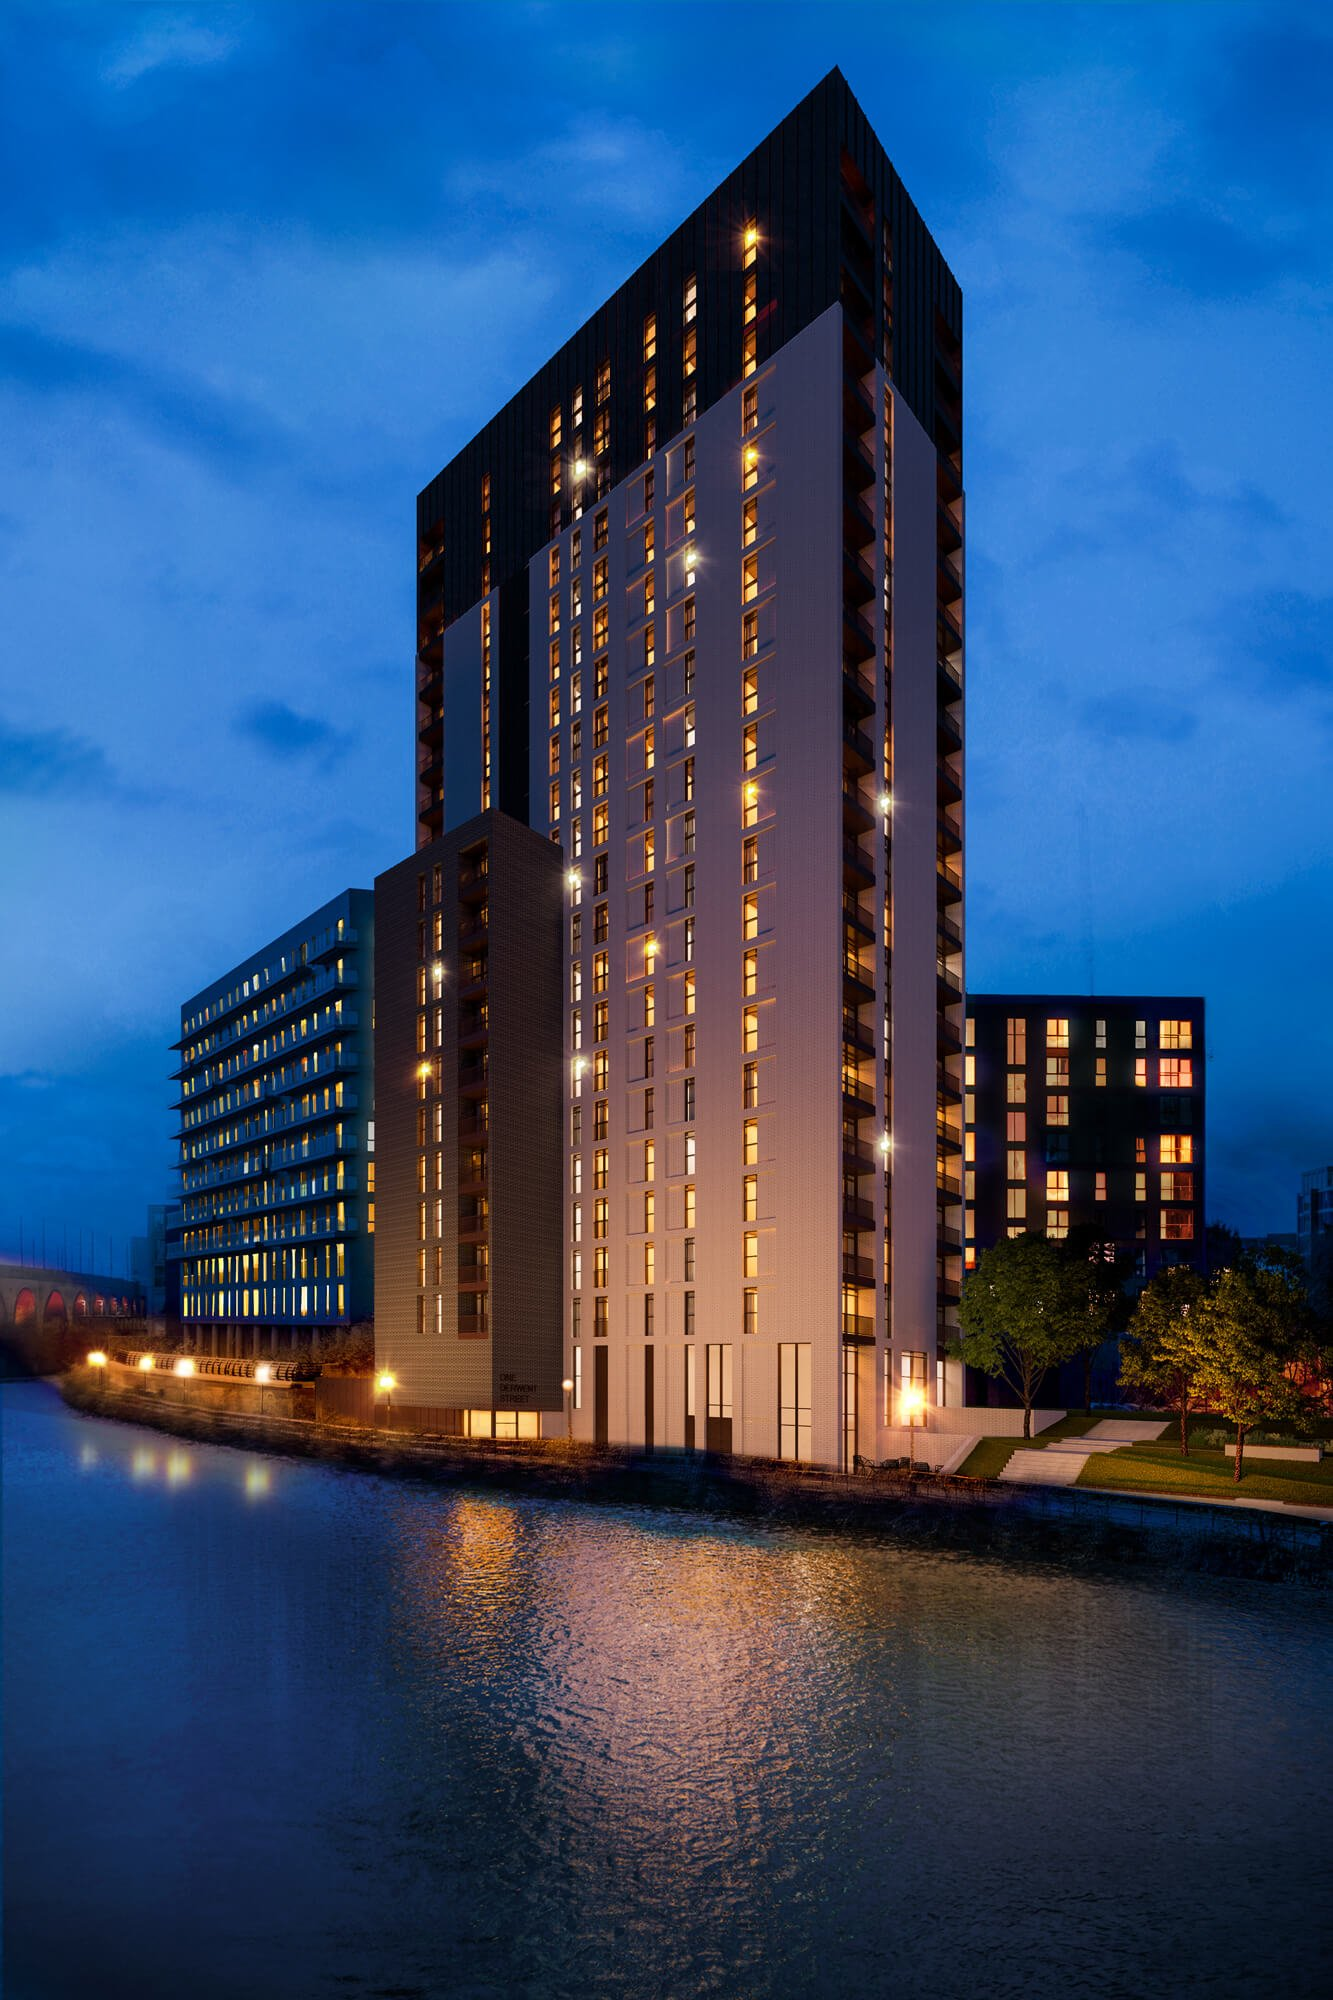 Urban CGI of Derwent Street high rise development, with a central building surrounded by a canal, viewed at night with ambient lighting.